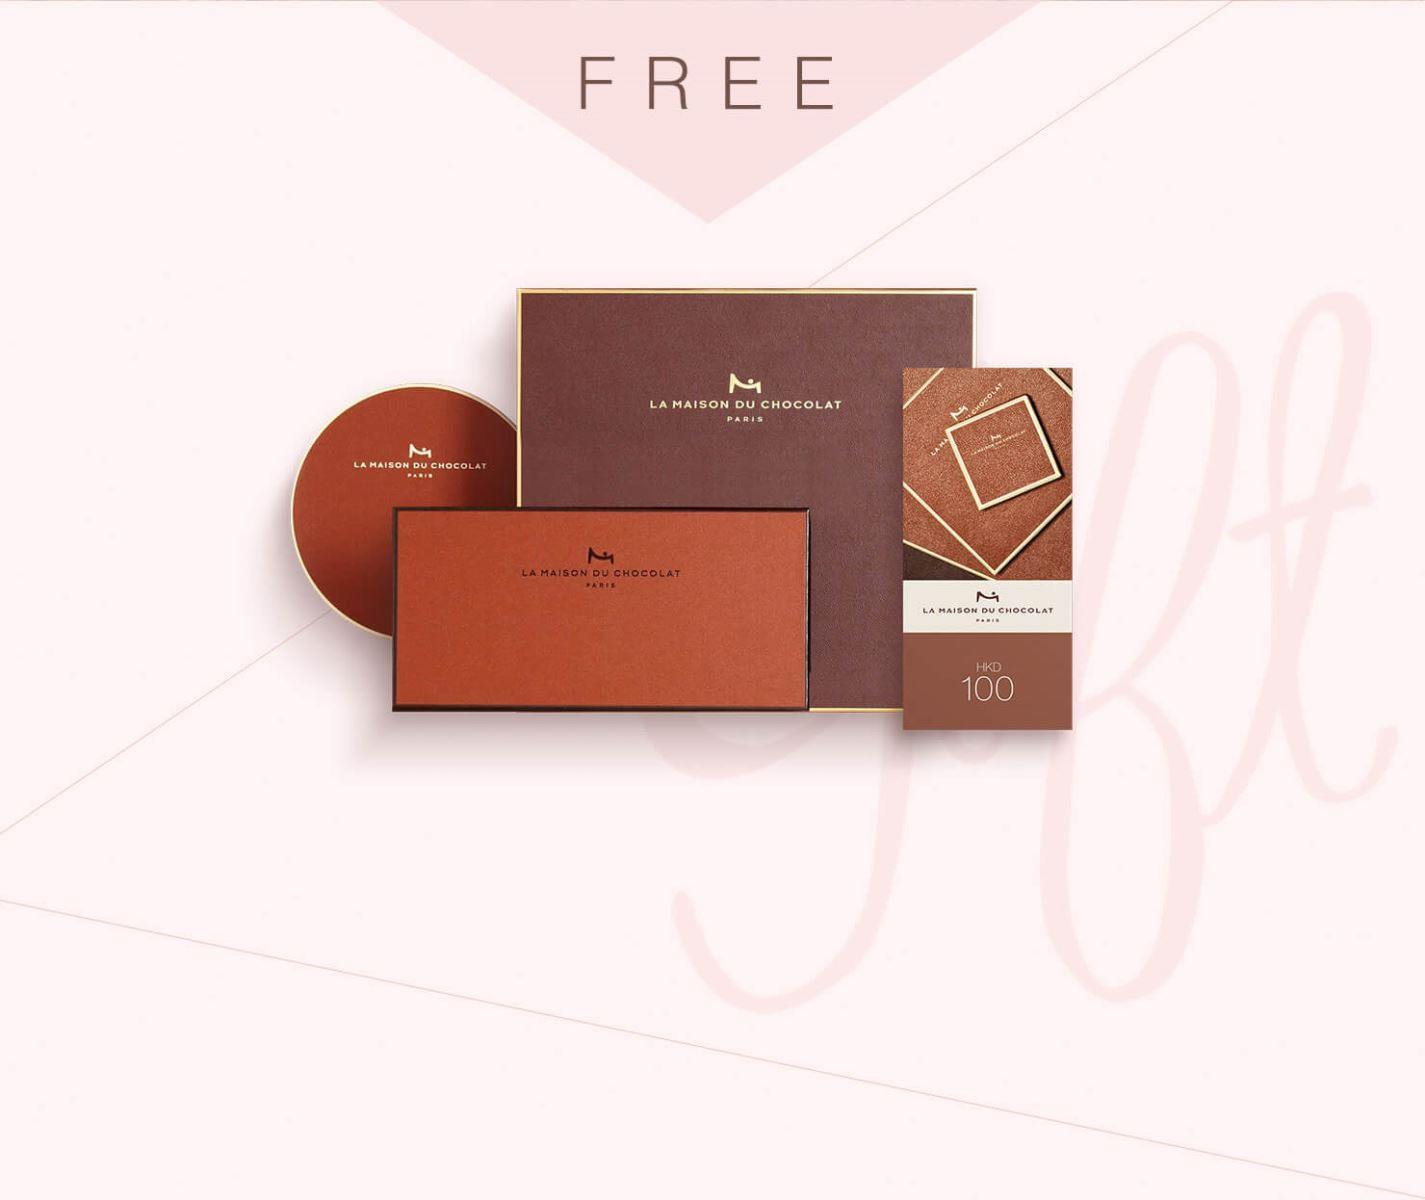 Looking for a surprise gift? Receive a complimentary 'La Maison du Chocolat HK$100 Gift Voucher' upon purchase of any item in this Collection! Explore the authentic taste of the French handmade chocolate and enjoy the sensational experience with your beloved one.